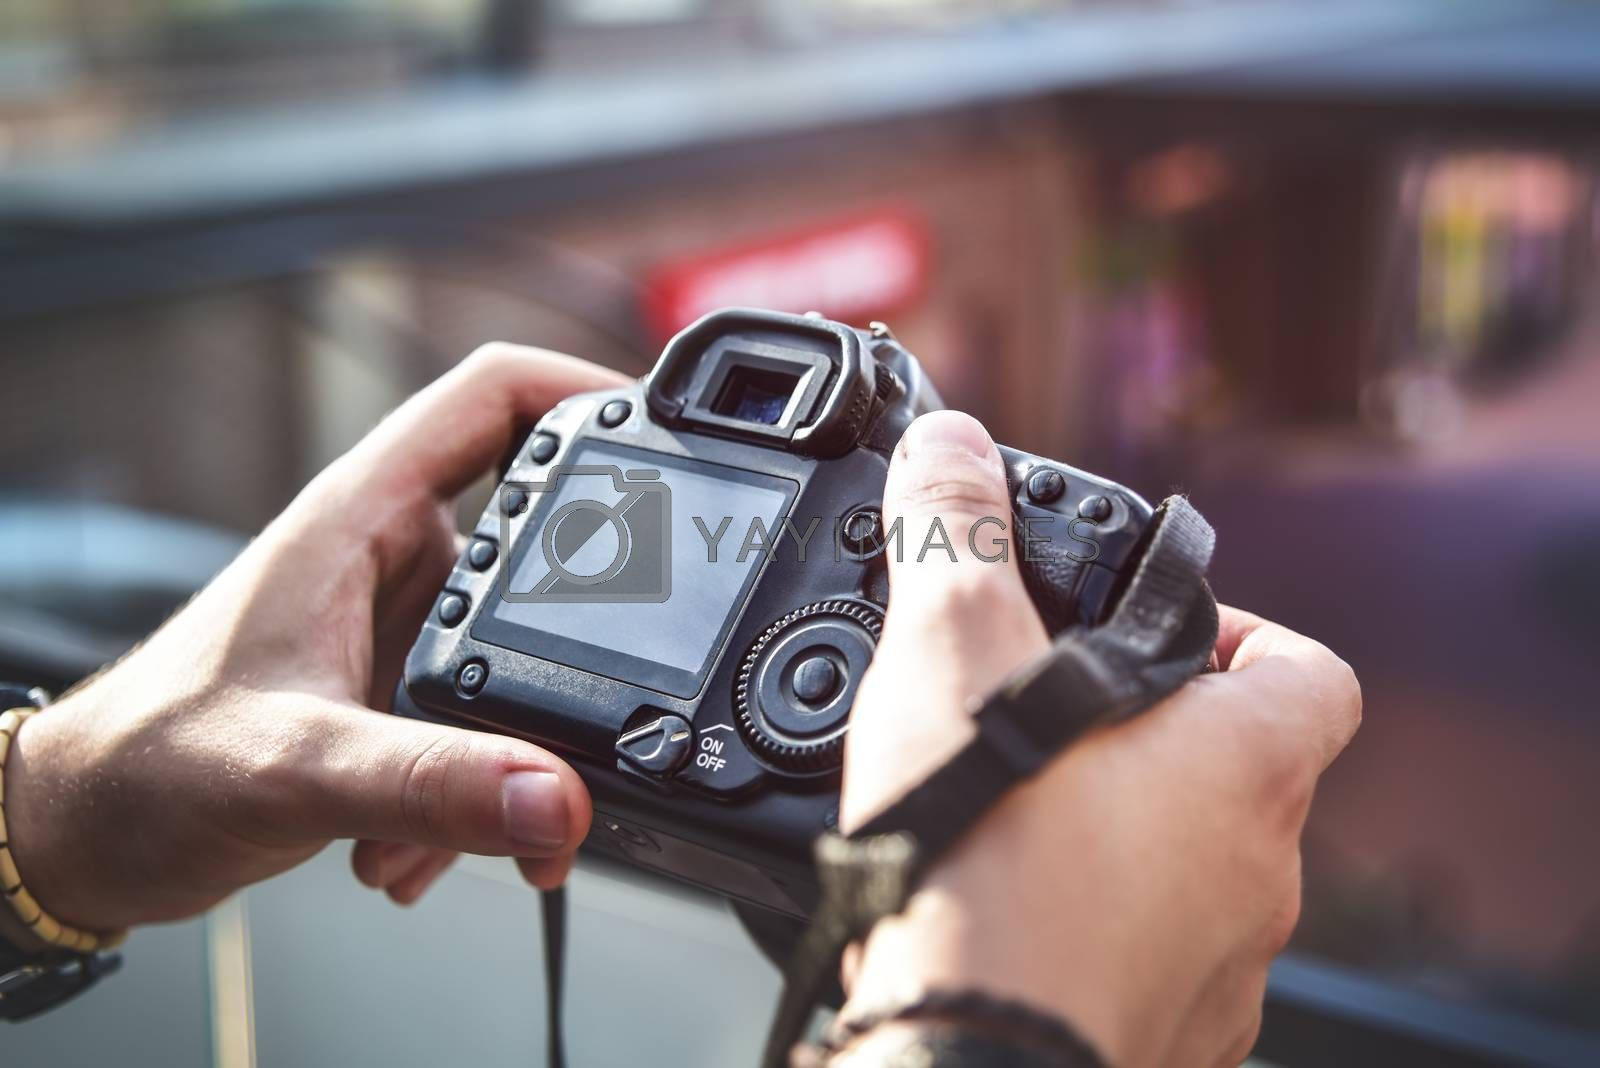 camera in hand, Street photography, photosession process